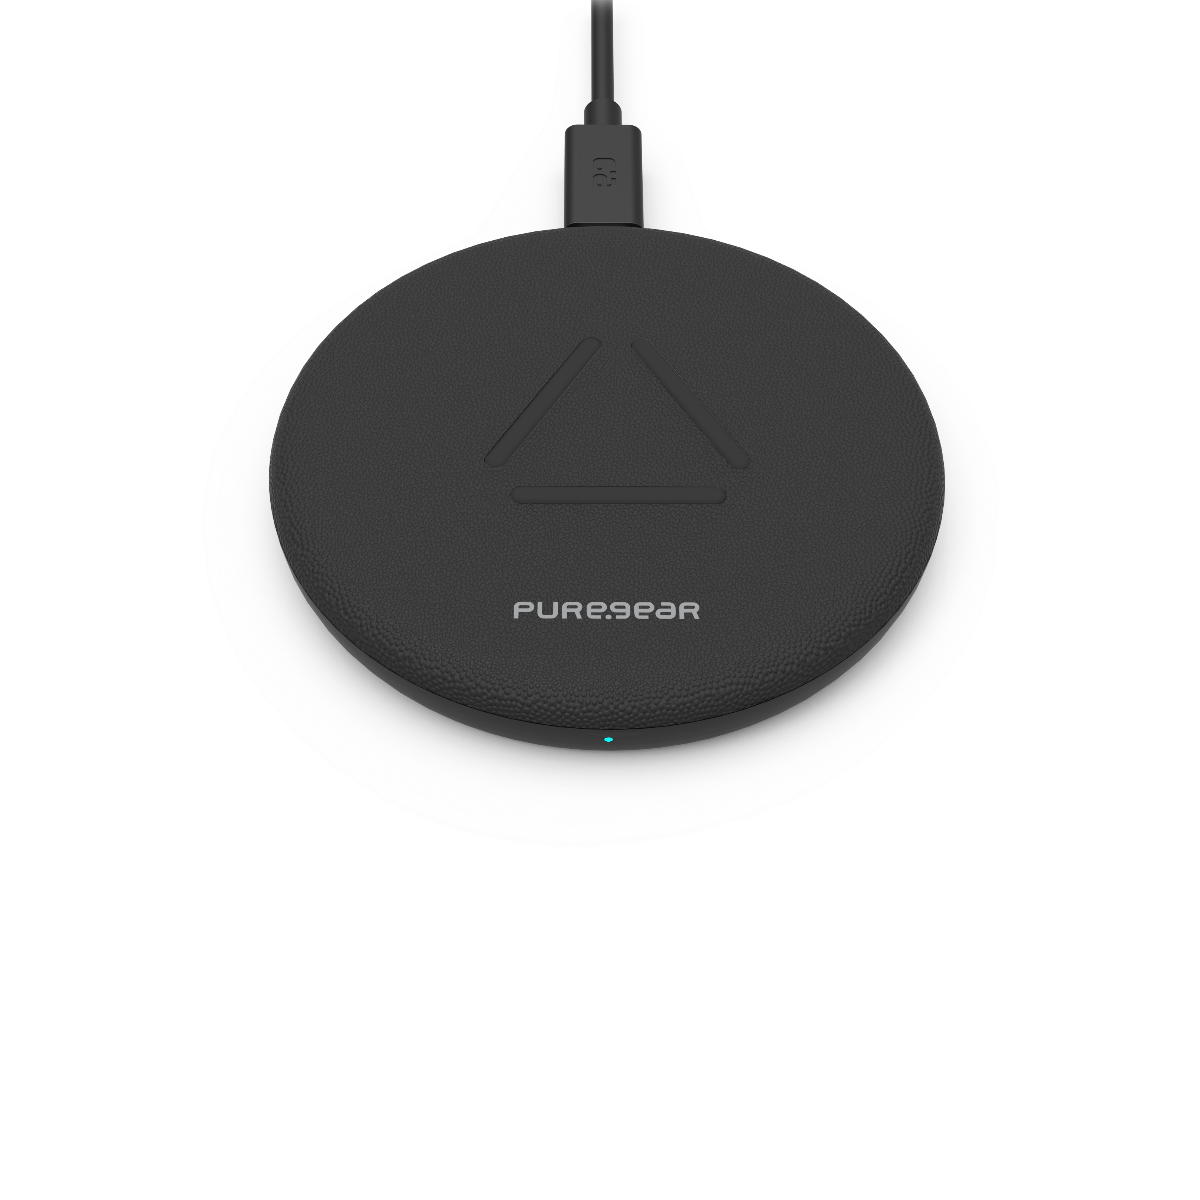 7.5W/10W Fast Wireless Charging Pad (Includes Wall Adapter) - Black